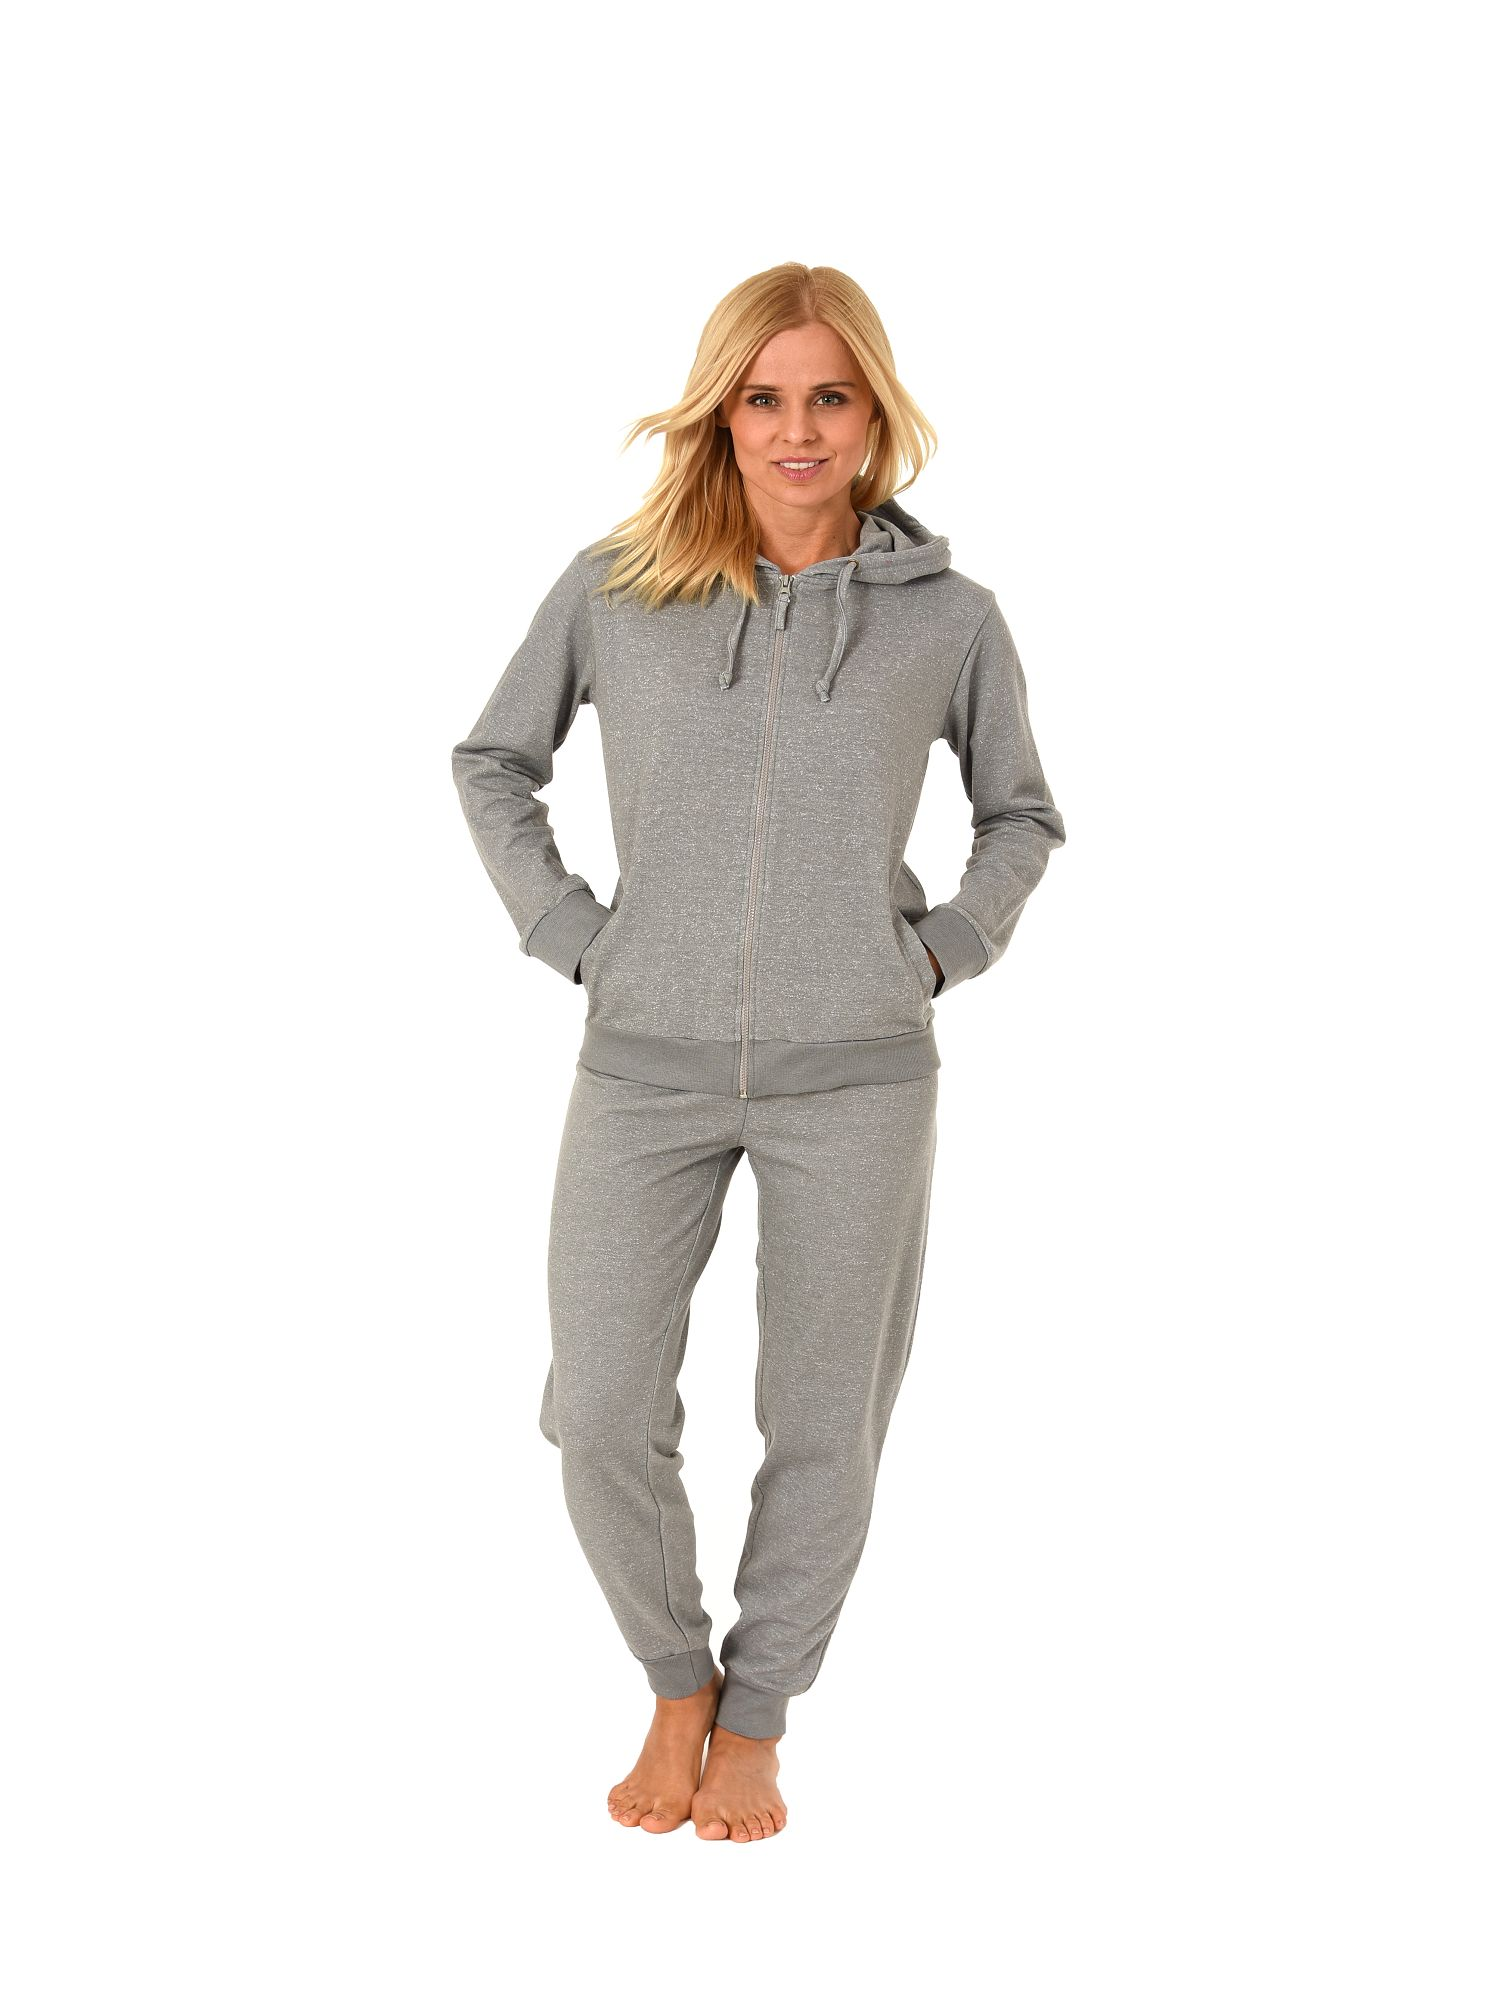 Normann Damen Hausanzug Jogginganzug mit Kapuze French Terry 181 216 99 906 – Bild 1